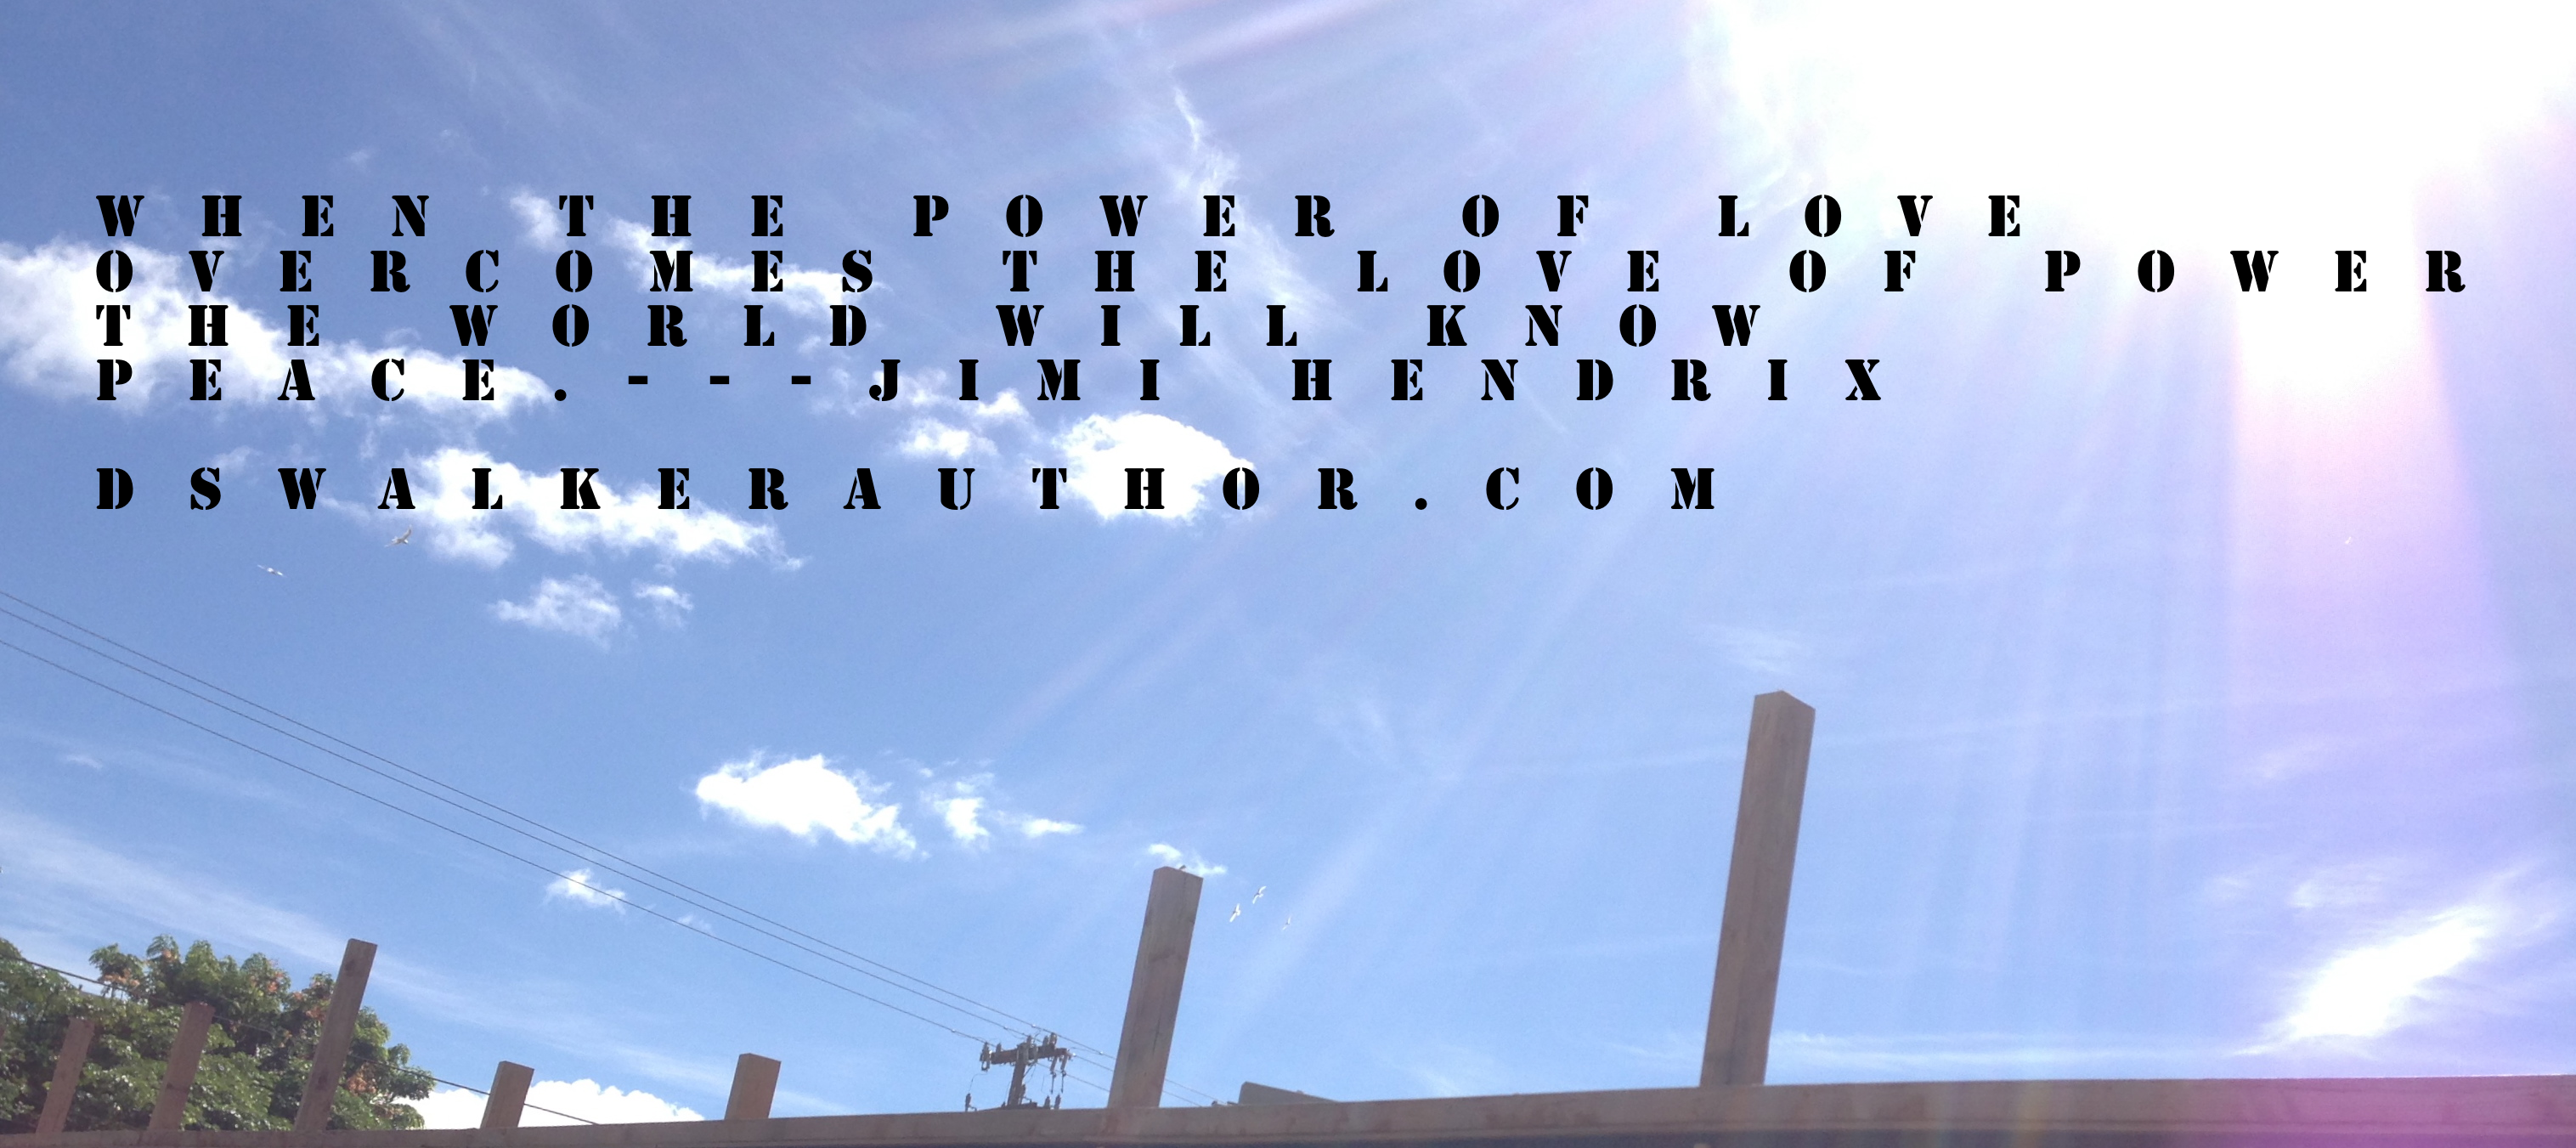 Love Power Quotes Quotes To Share « Delightfully Different Life